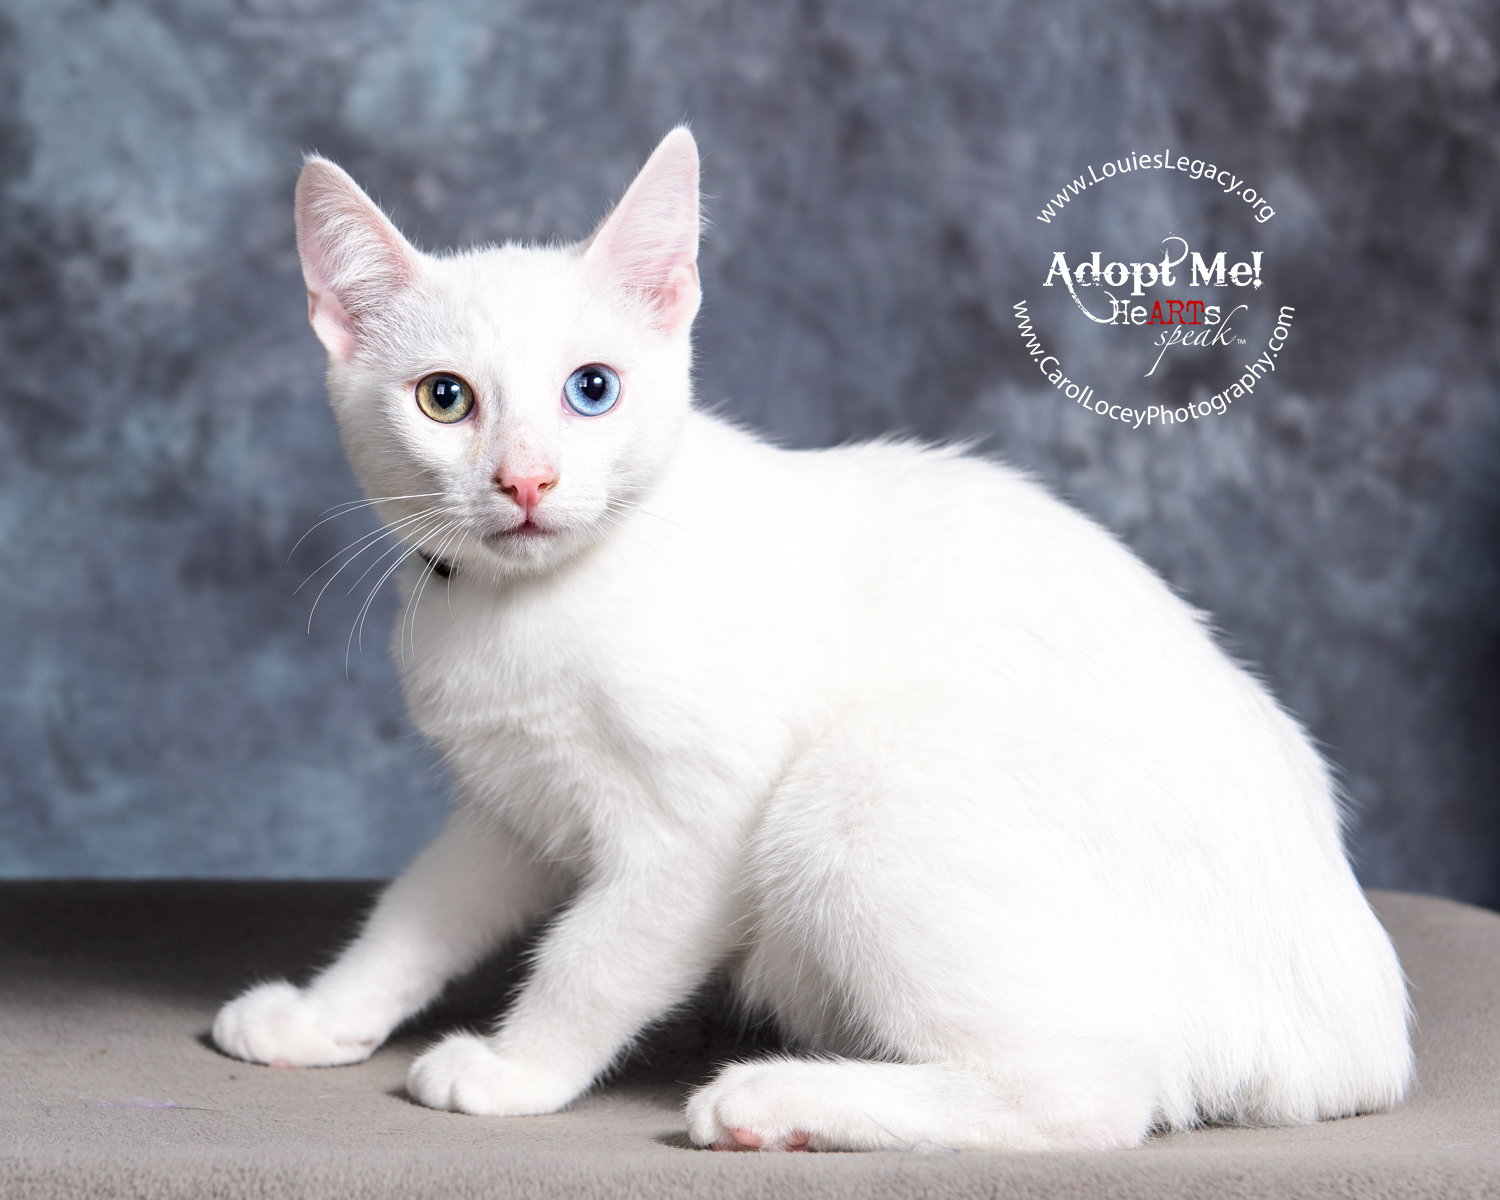 Donut has been adopted!